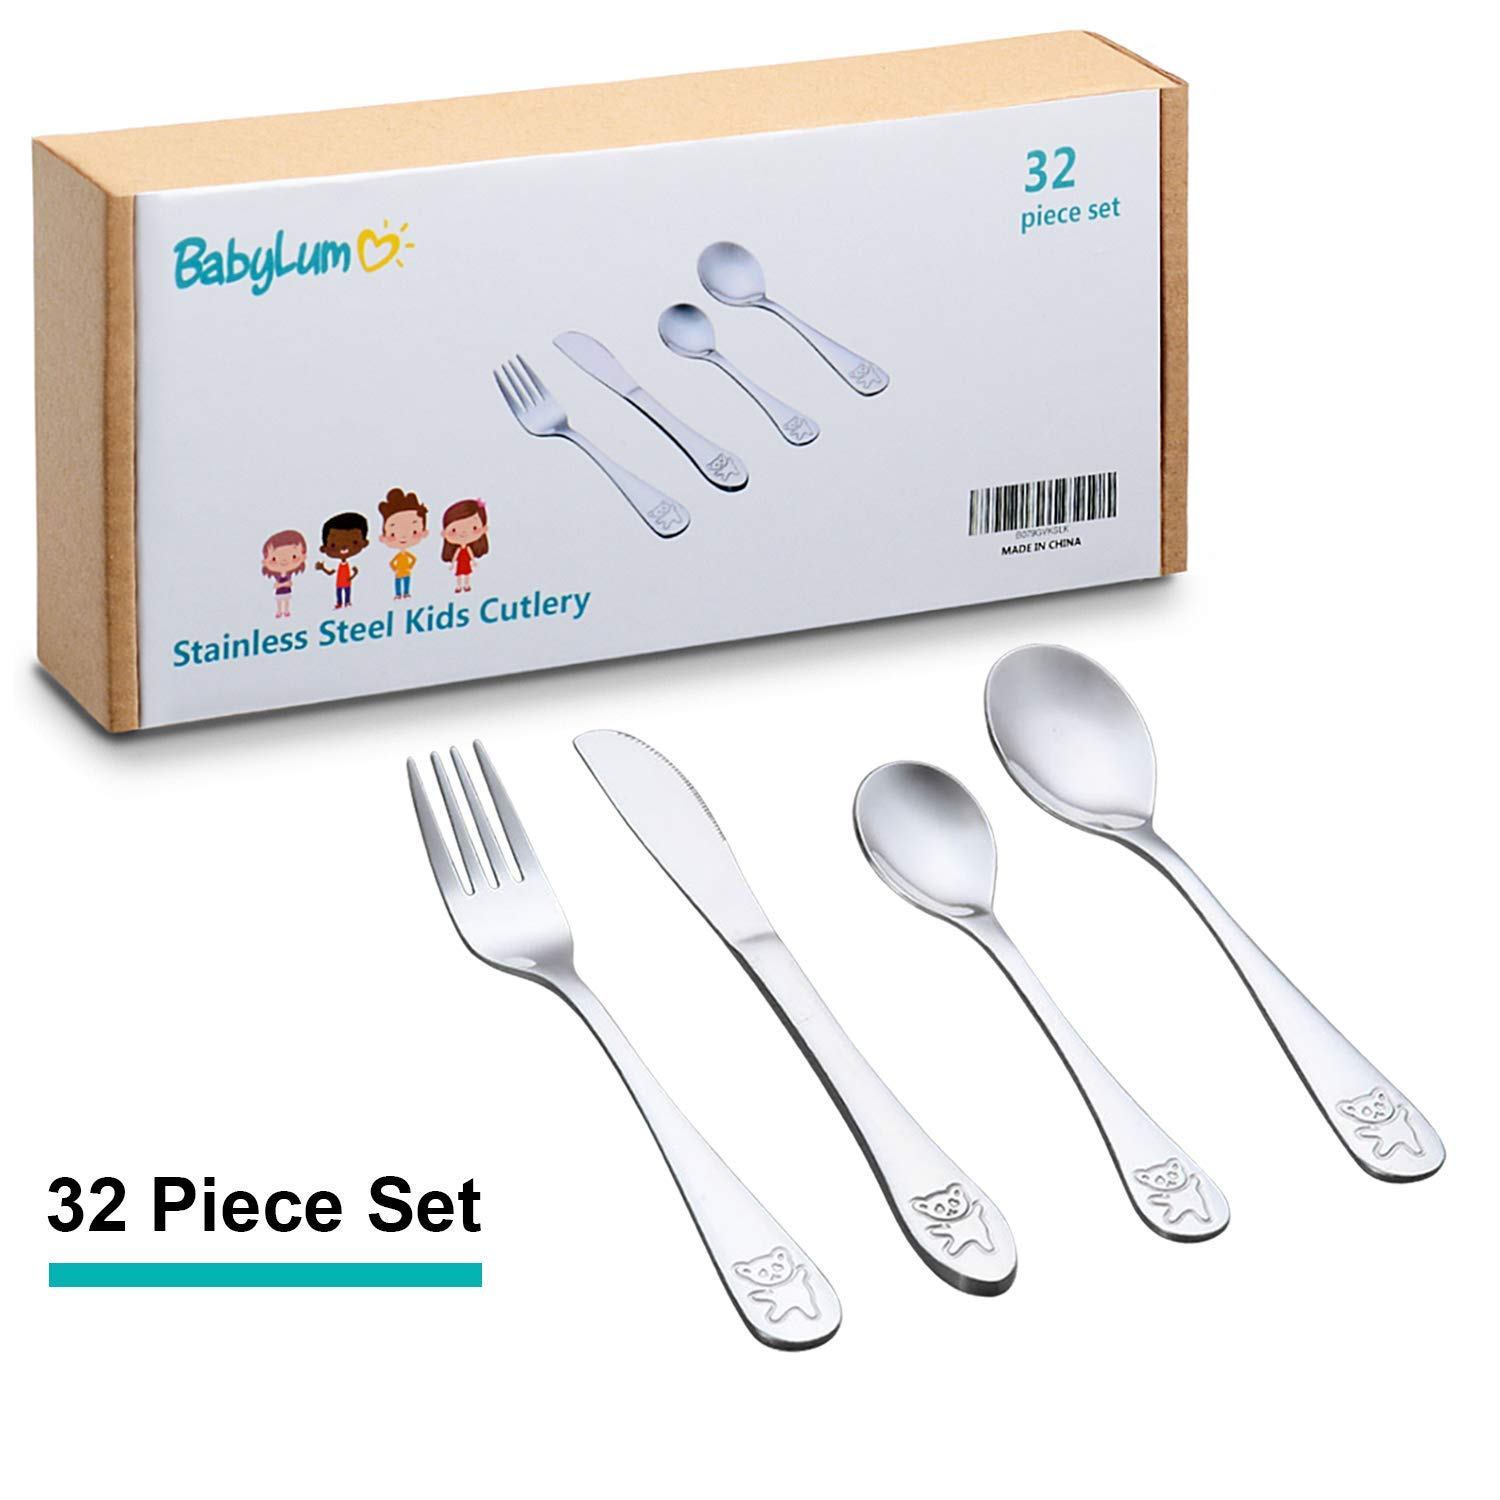 16 Piece Utensils Set for Kids, Stainless Steel Cutlery Flatware, Safe Silverware for Toddler and Child, Total 4 Place Settings with 4 Knives, 4 Forks, 4 Spoons, 4 Dessert Spoons. (Set of 16) BabyLum